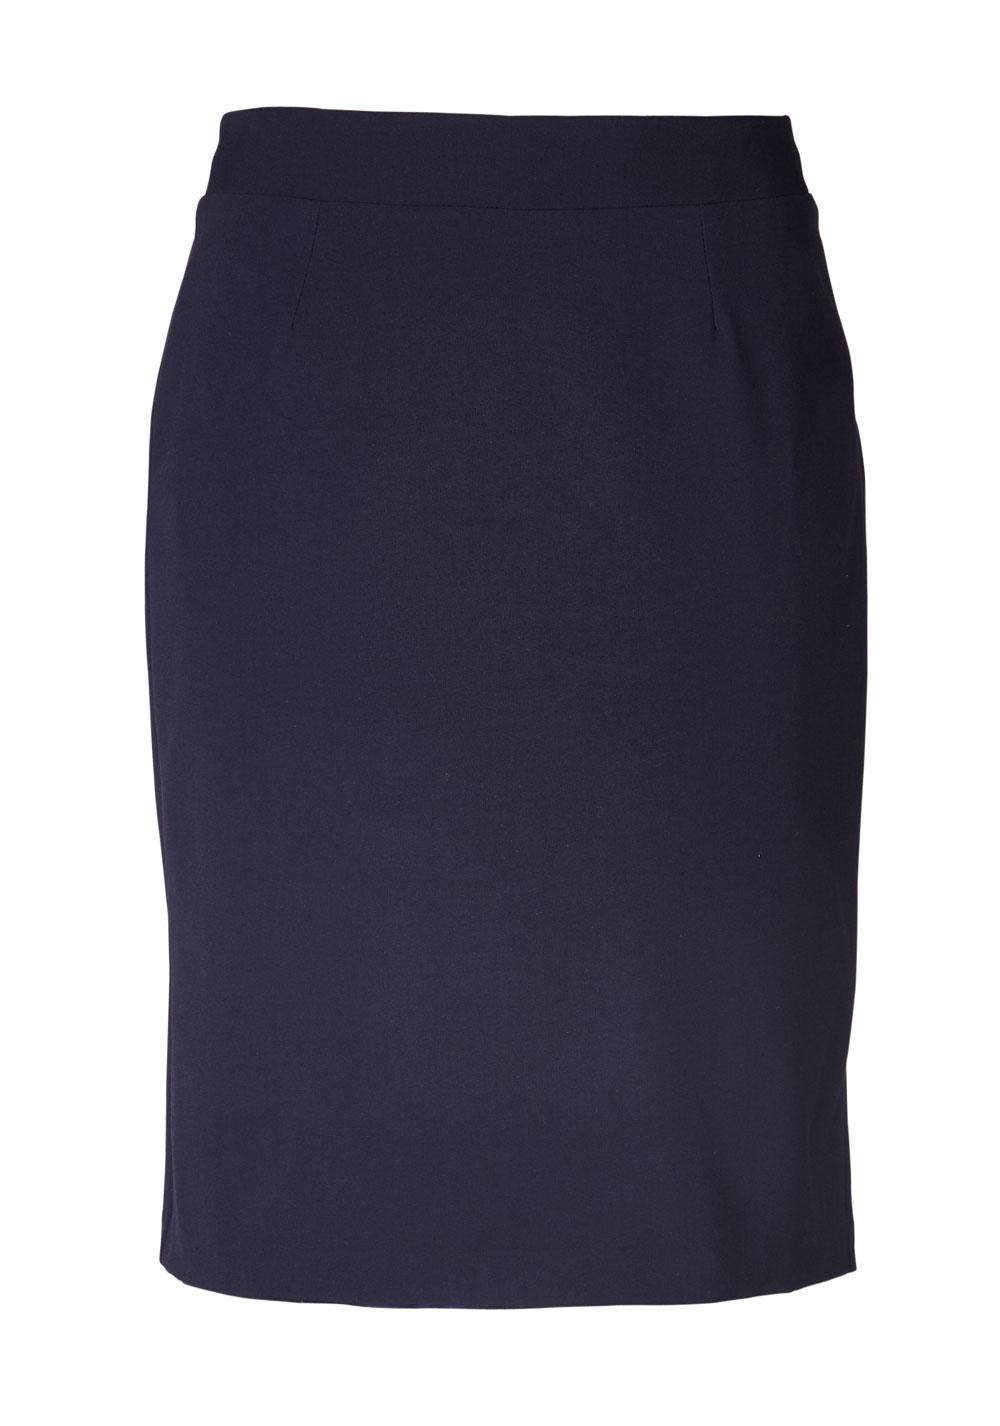 Alice 505 Skirt - Navy